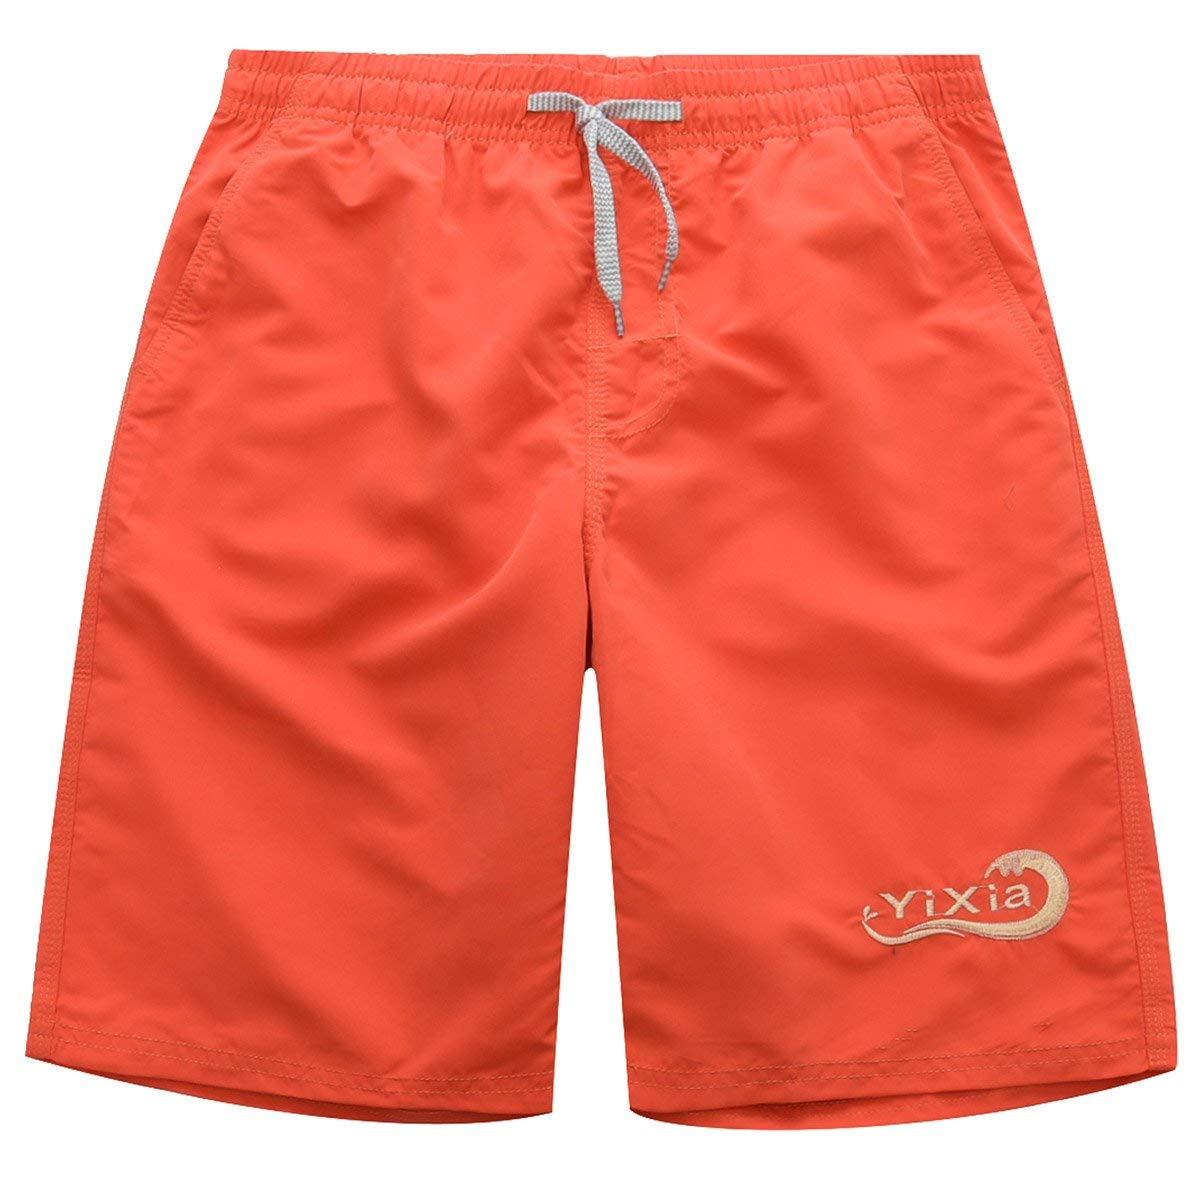 d812da7b3d Prefer To Life Solid Color Board Shorts Men's Swim Trunk Outdoor Beach Wear  (Asian Size